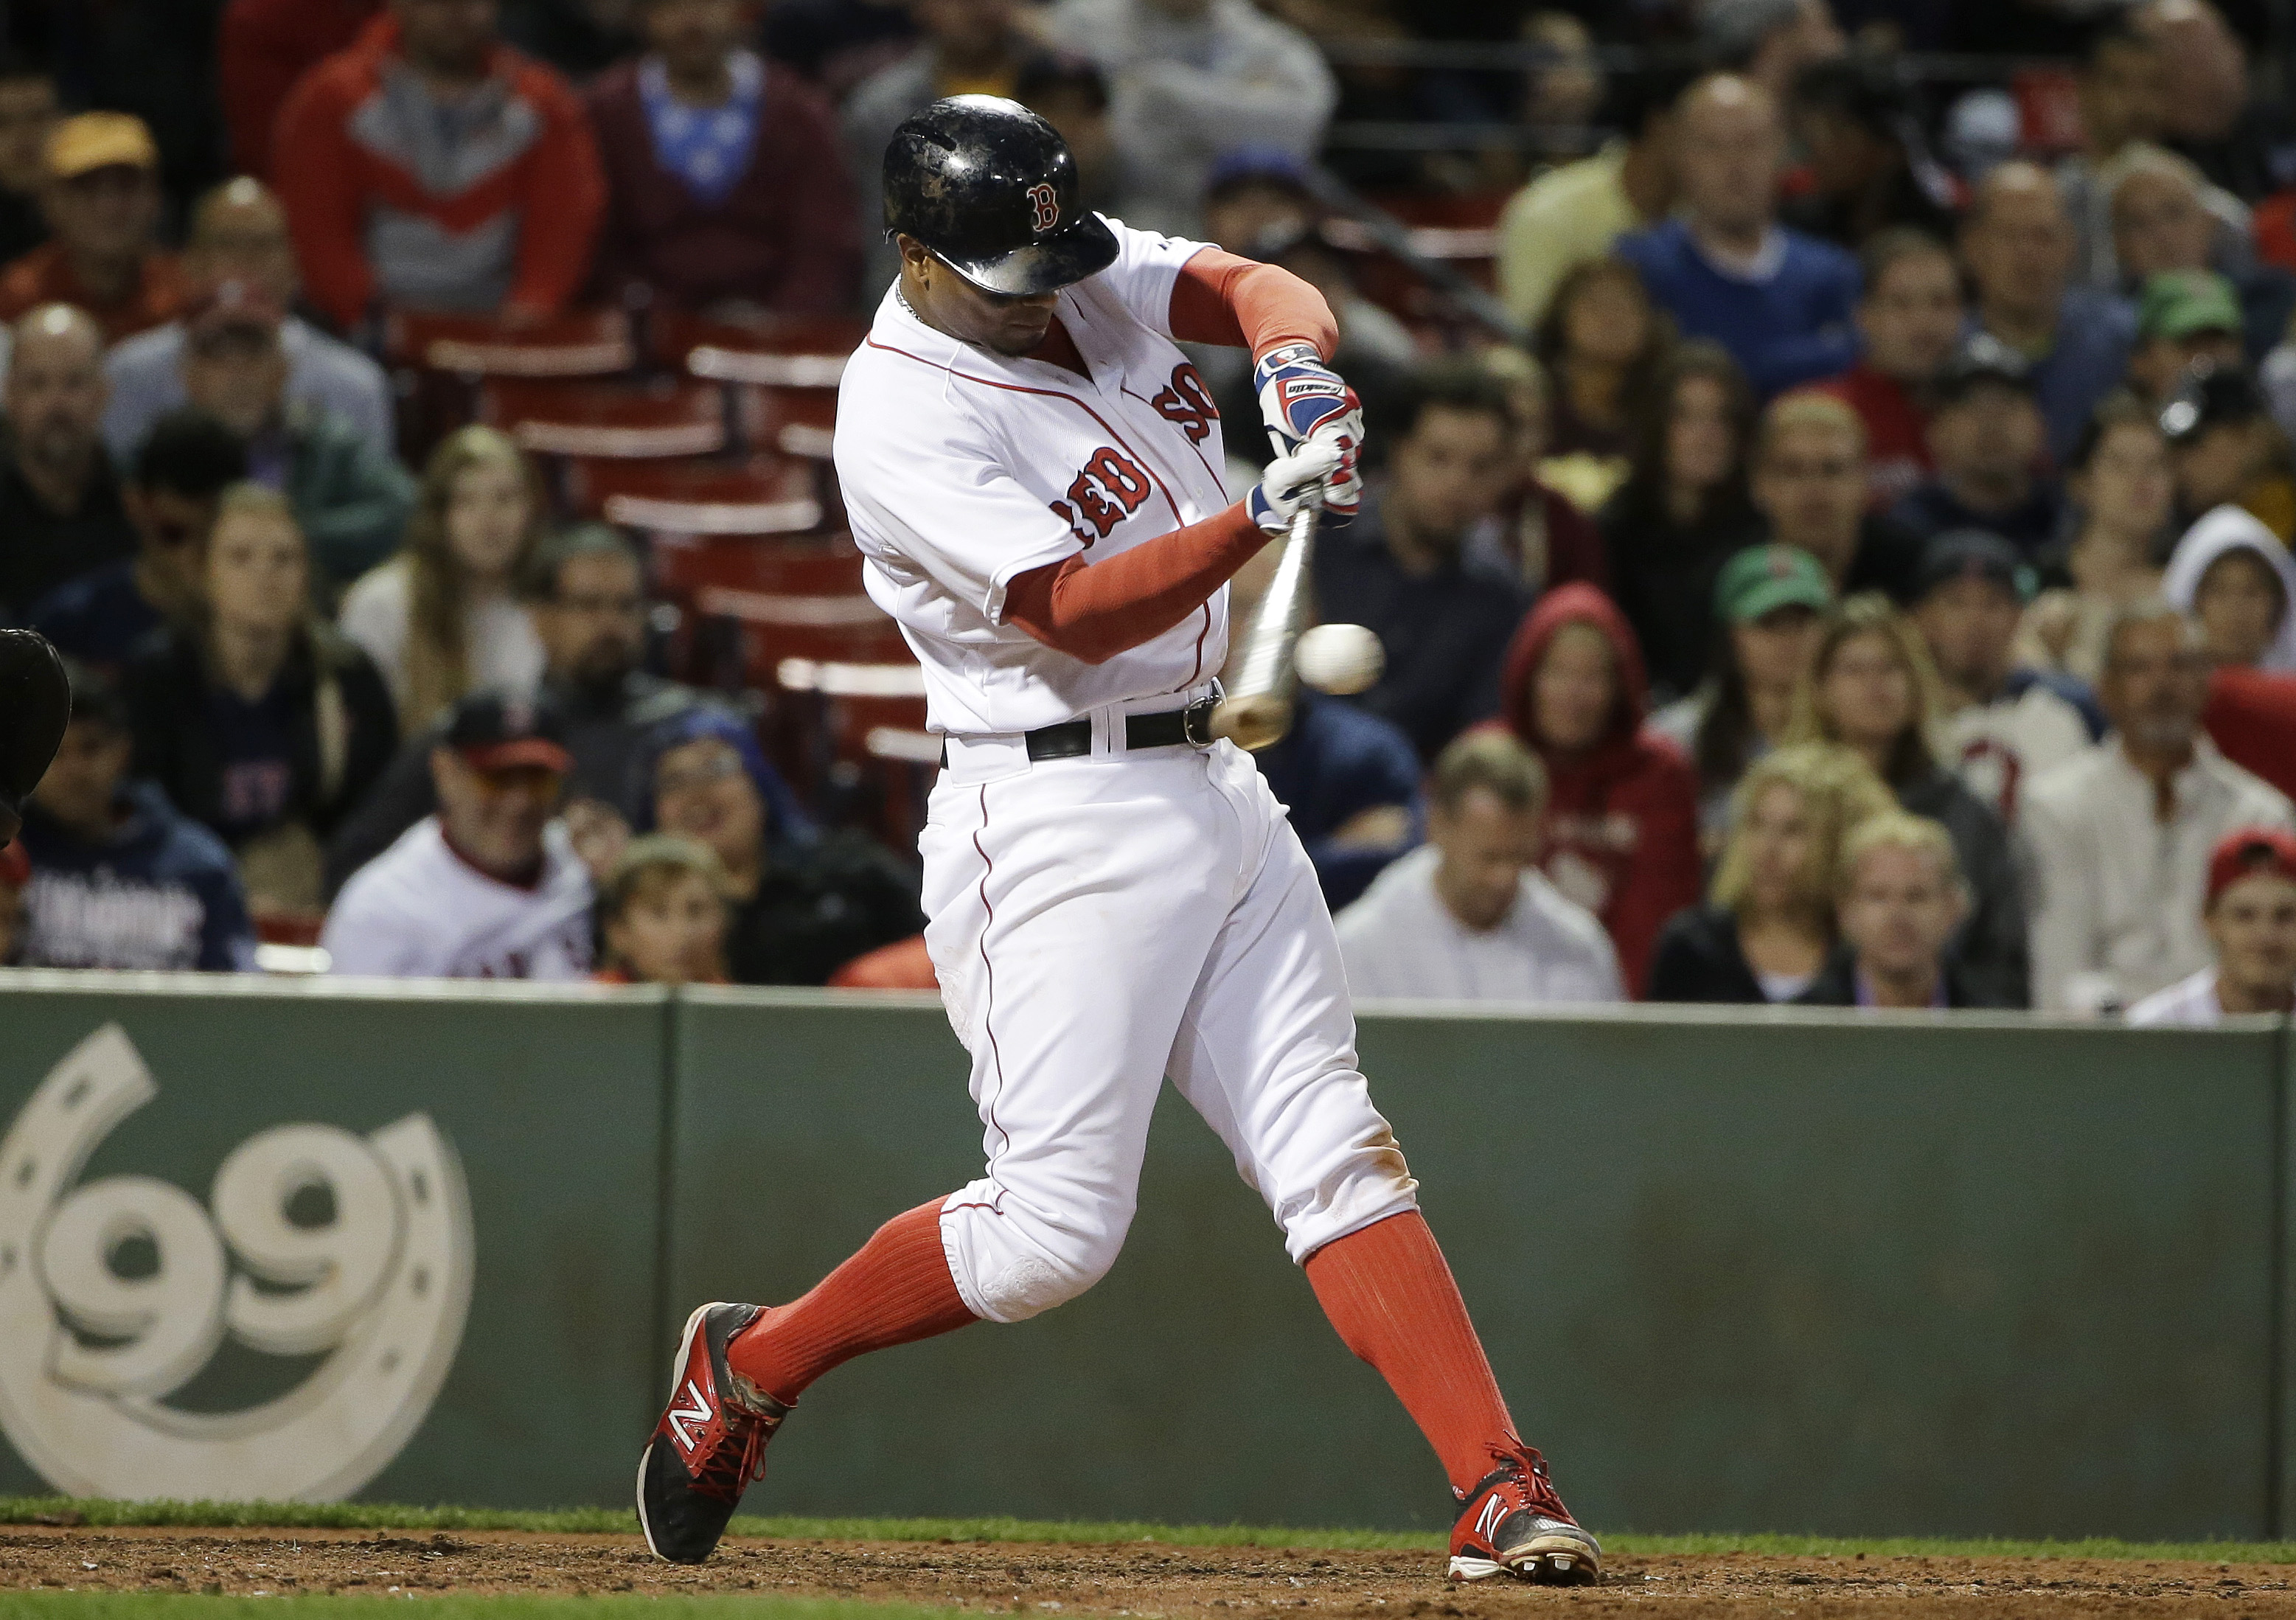 Boston Red Sox's Xander Bogaerts hits an RBI double in the seventh inning of a baseball game against the Tampa Bay Rays, Monday, Sept. 21, 2015, at Fenway Park in Boston. (AP Photo/Steven Senne)